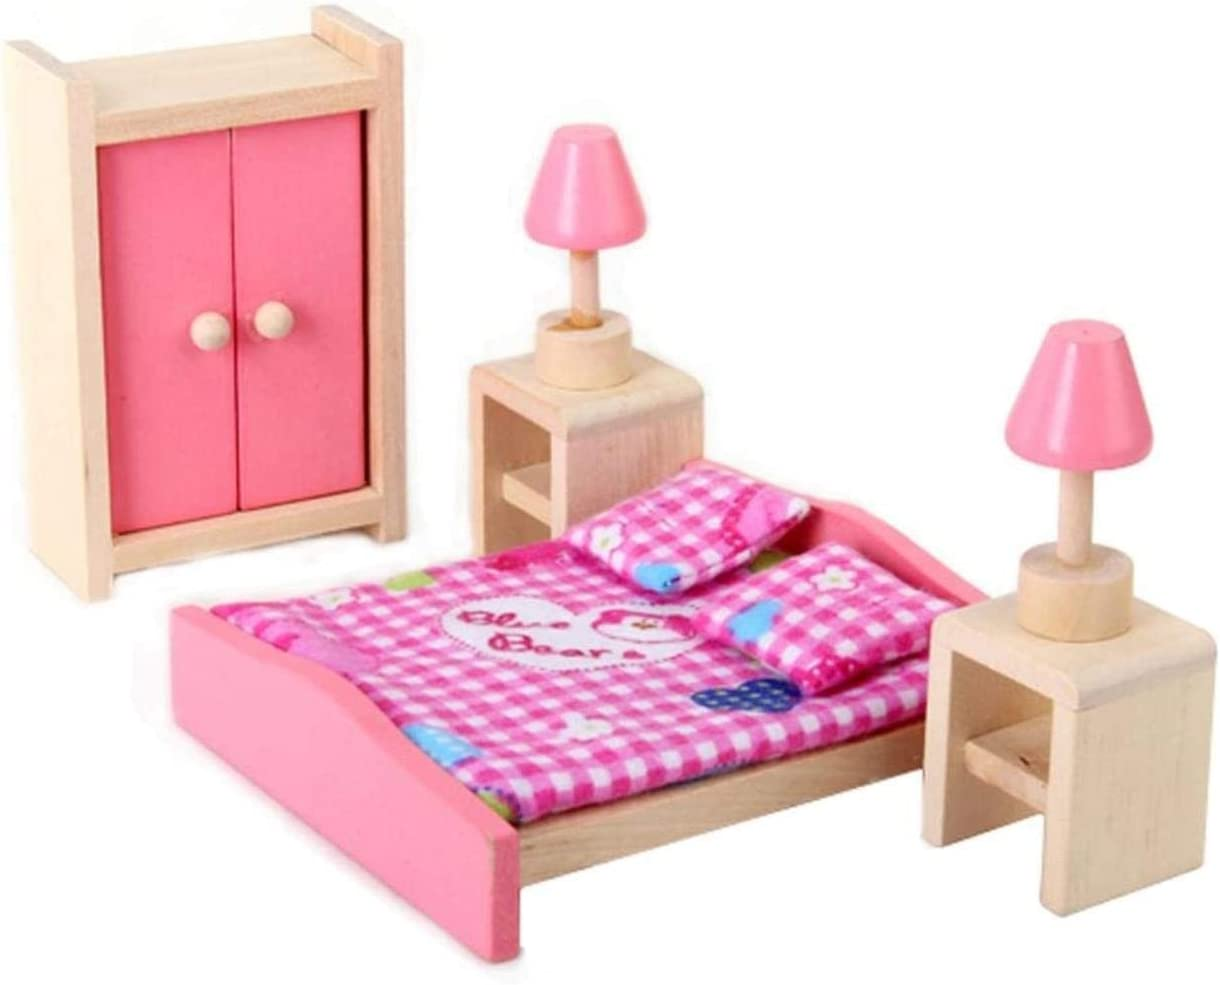 Doll House Bedroom Furniture Colorado Springs Mall Set Some reservation Closet-Ran Bed + Table Lamp